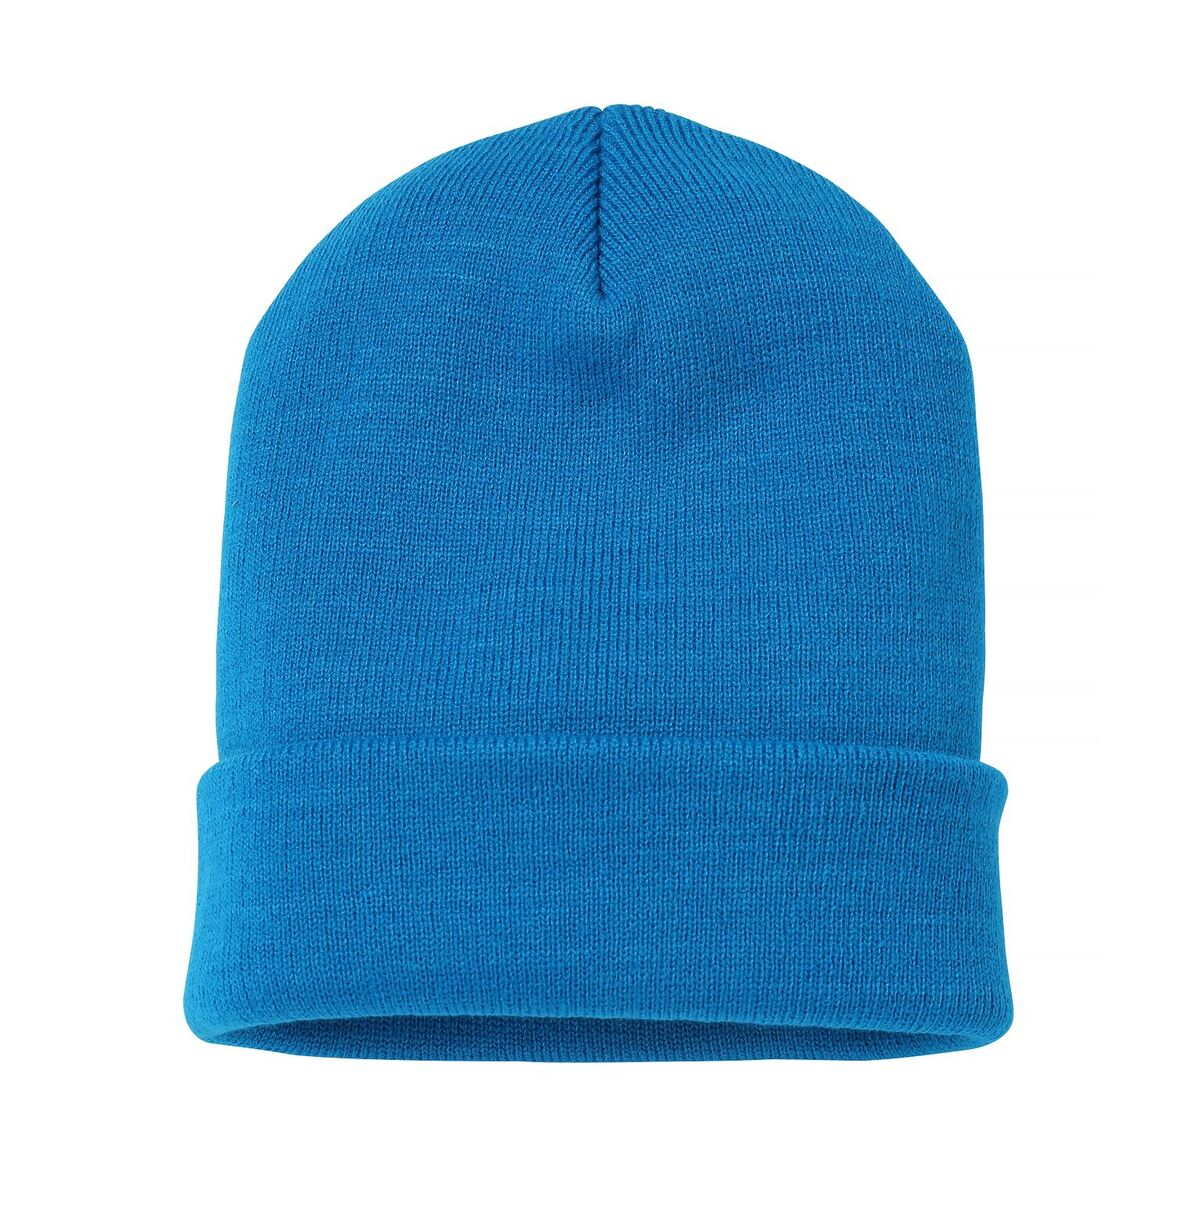 beanie hats - £8.95 including 1 logo embroideryAvailable in Adult or Junior SizesAvailable in a huge range of colours